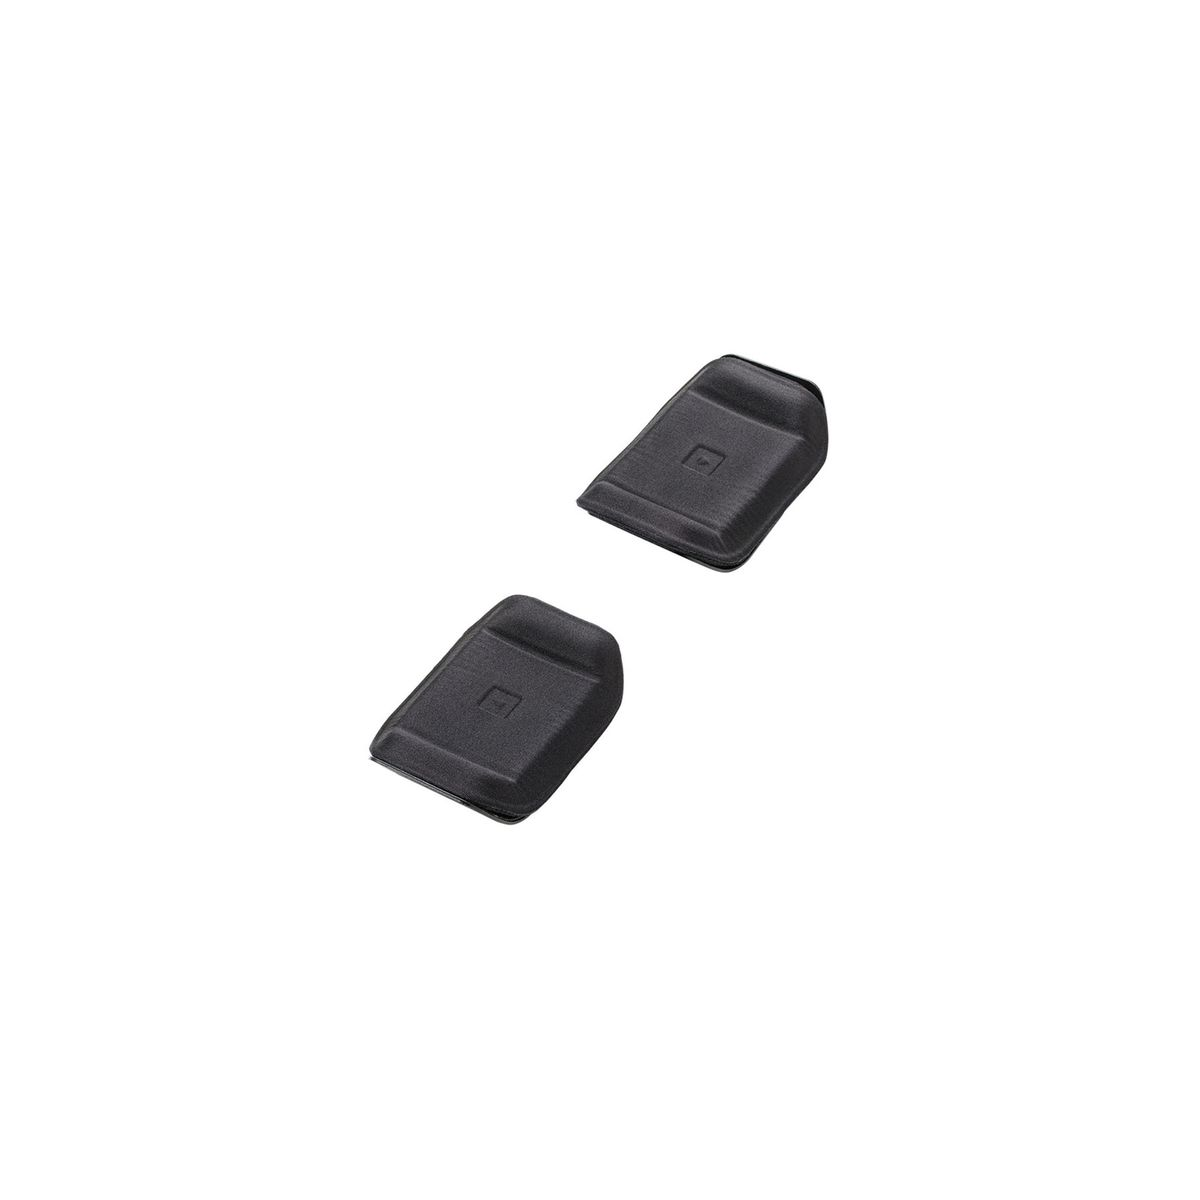 Profile F40 arm rest kit | Misc. Handlebars and Stems